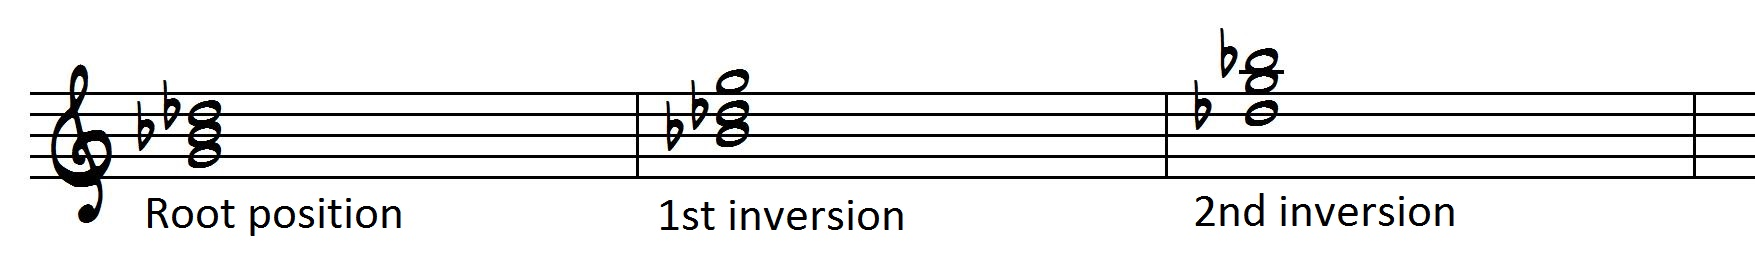 Mastering The Fretboard: Diminished Triads - Learn Jazz Standards